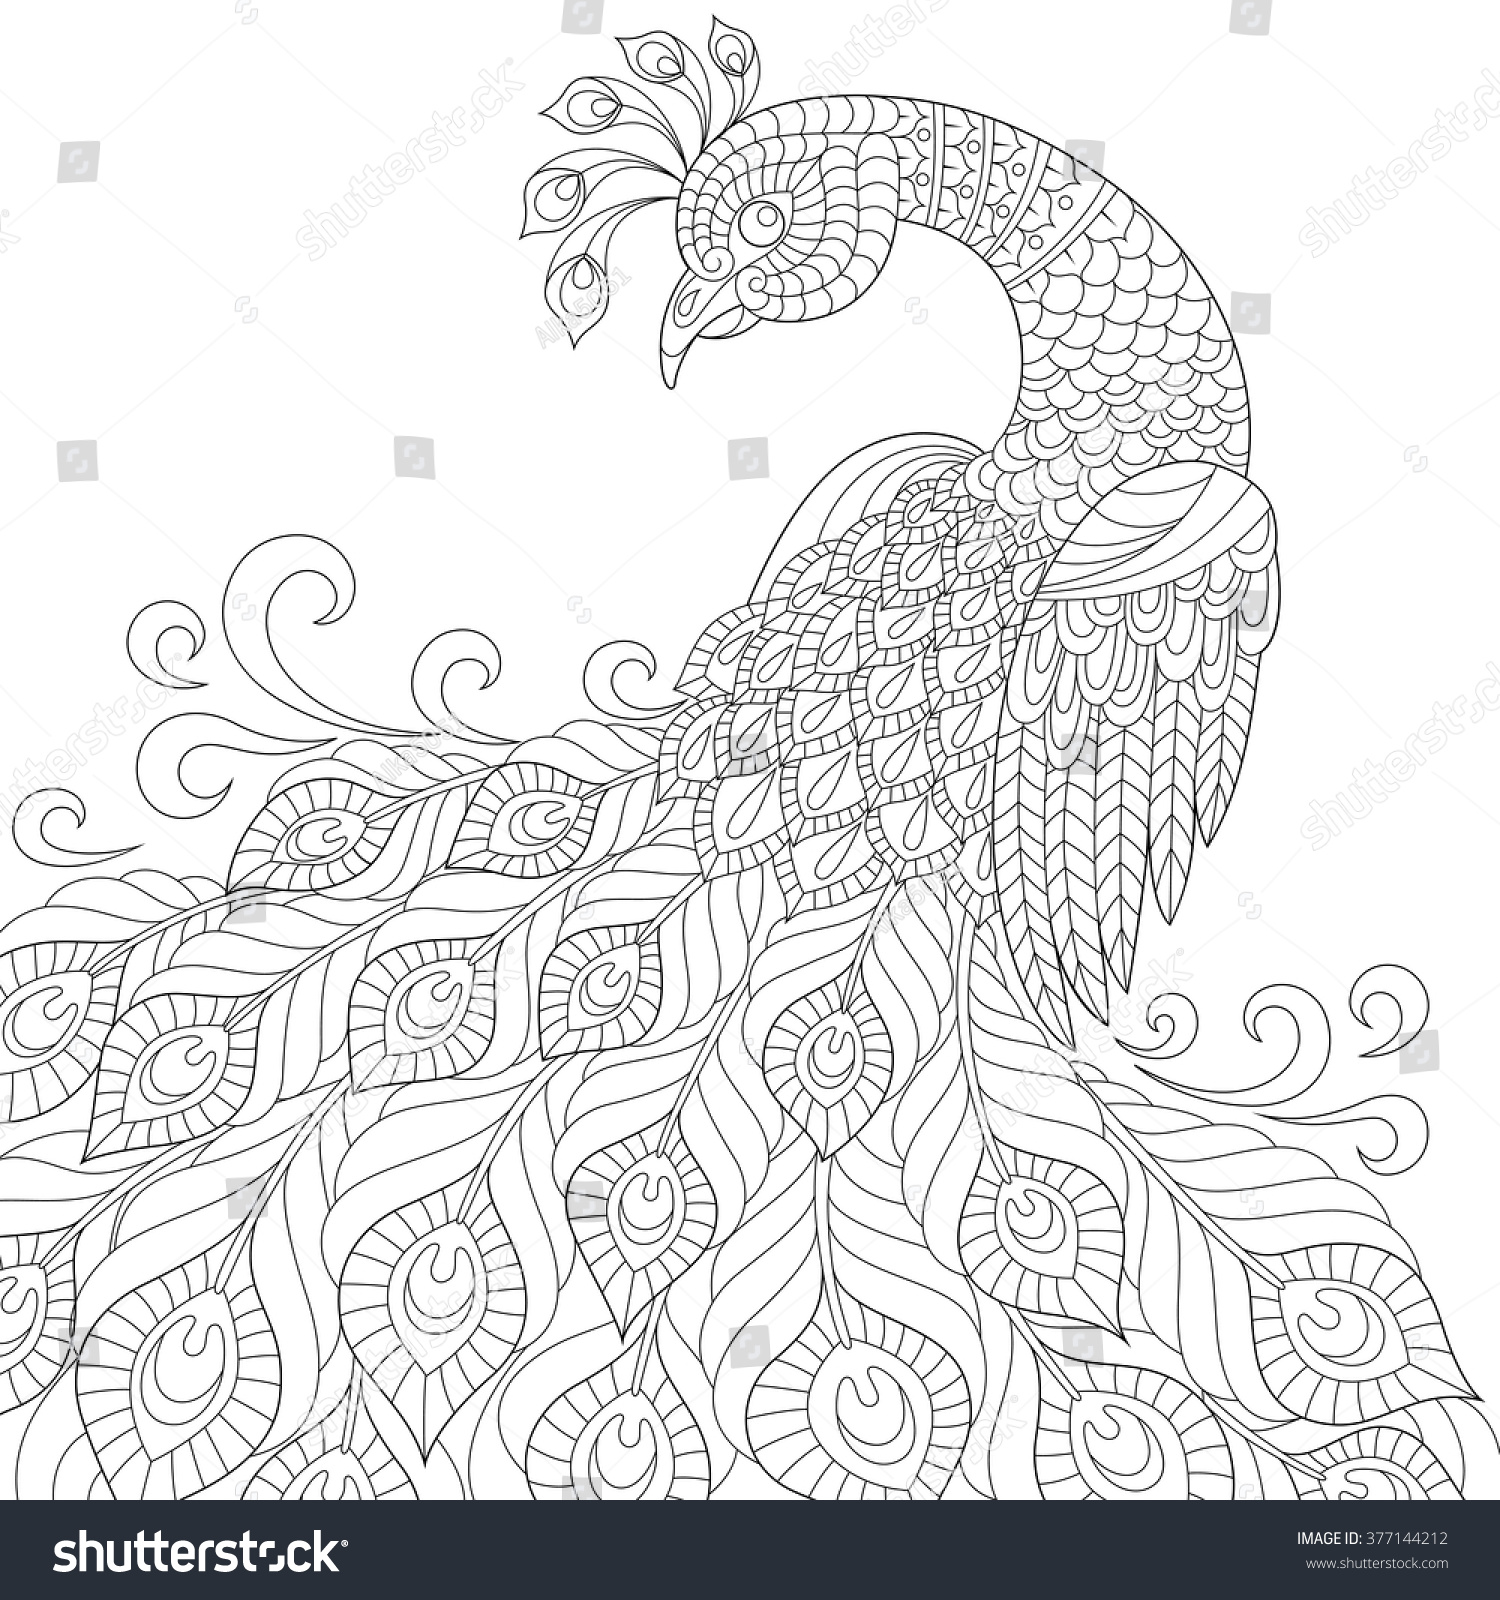 Decorative Peacock Adult Antistress Coloring Page Stock Vector